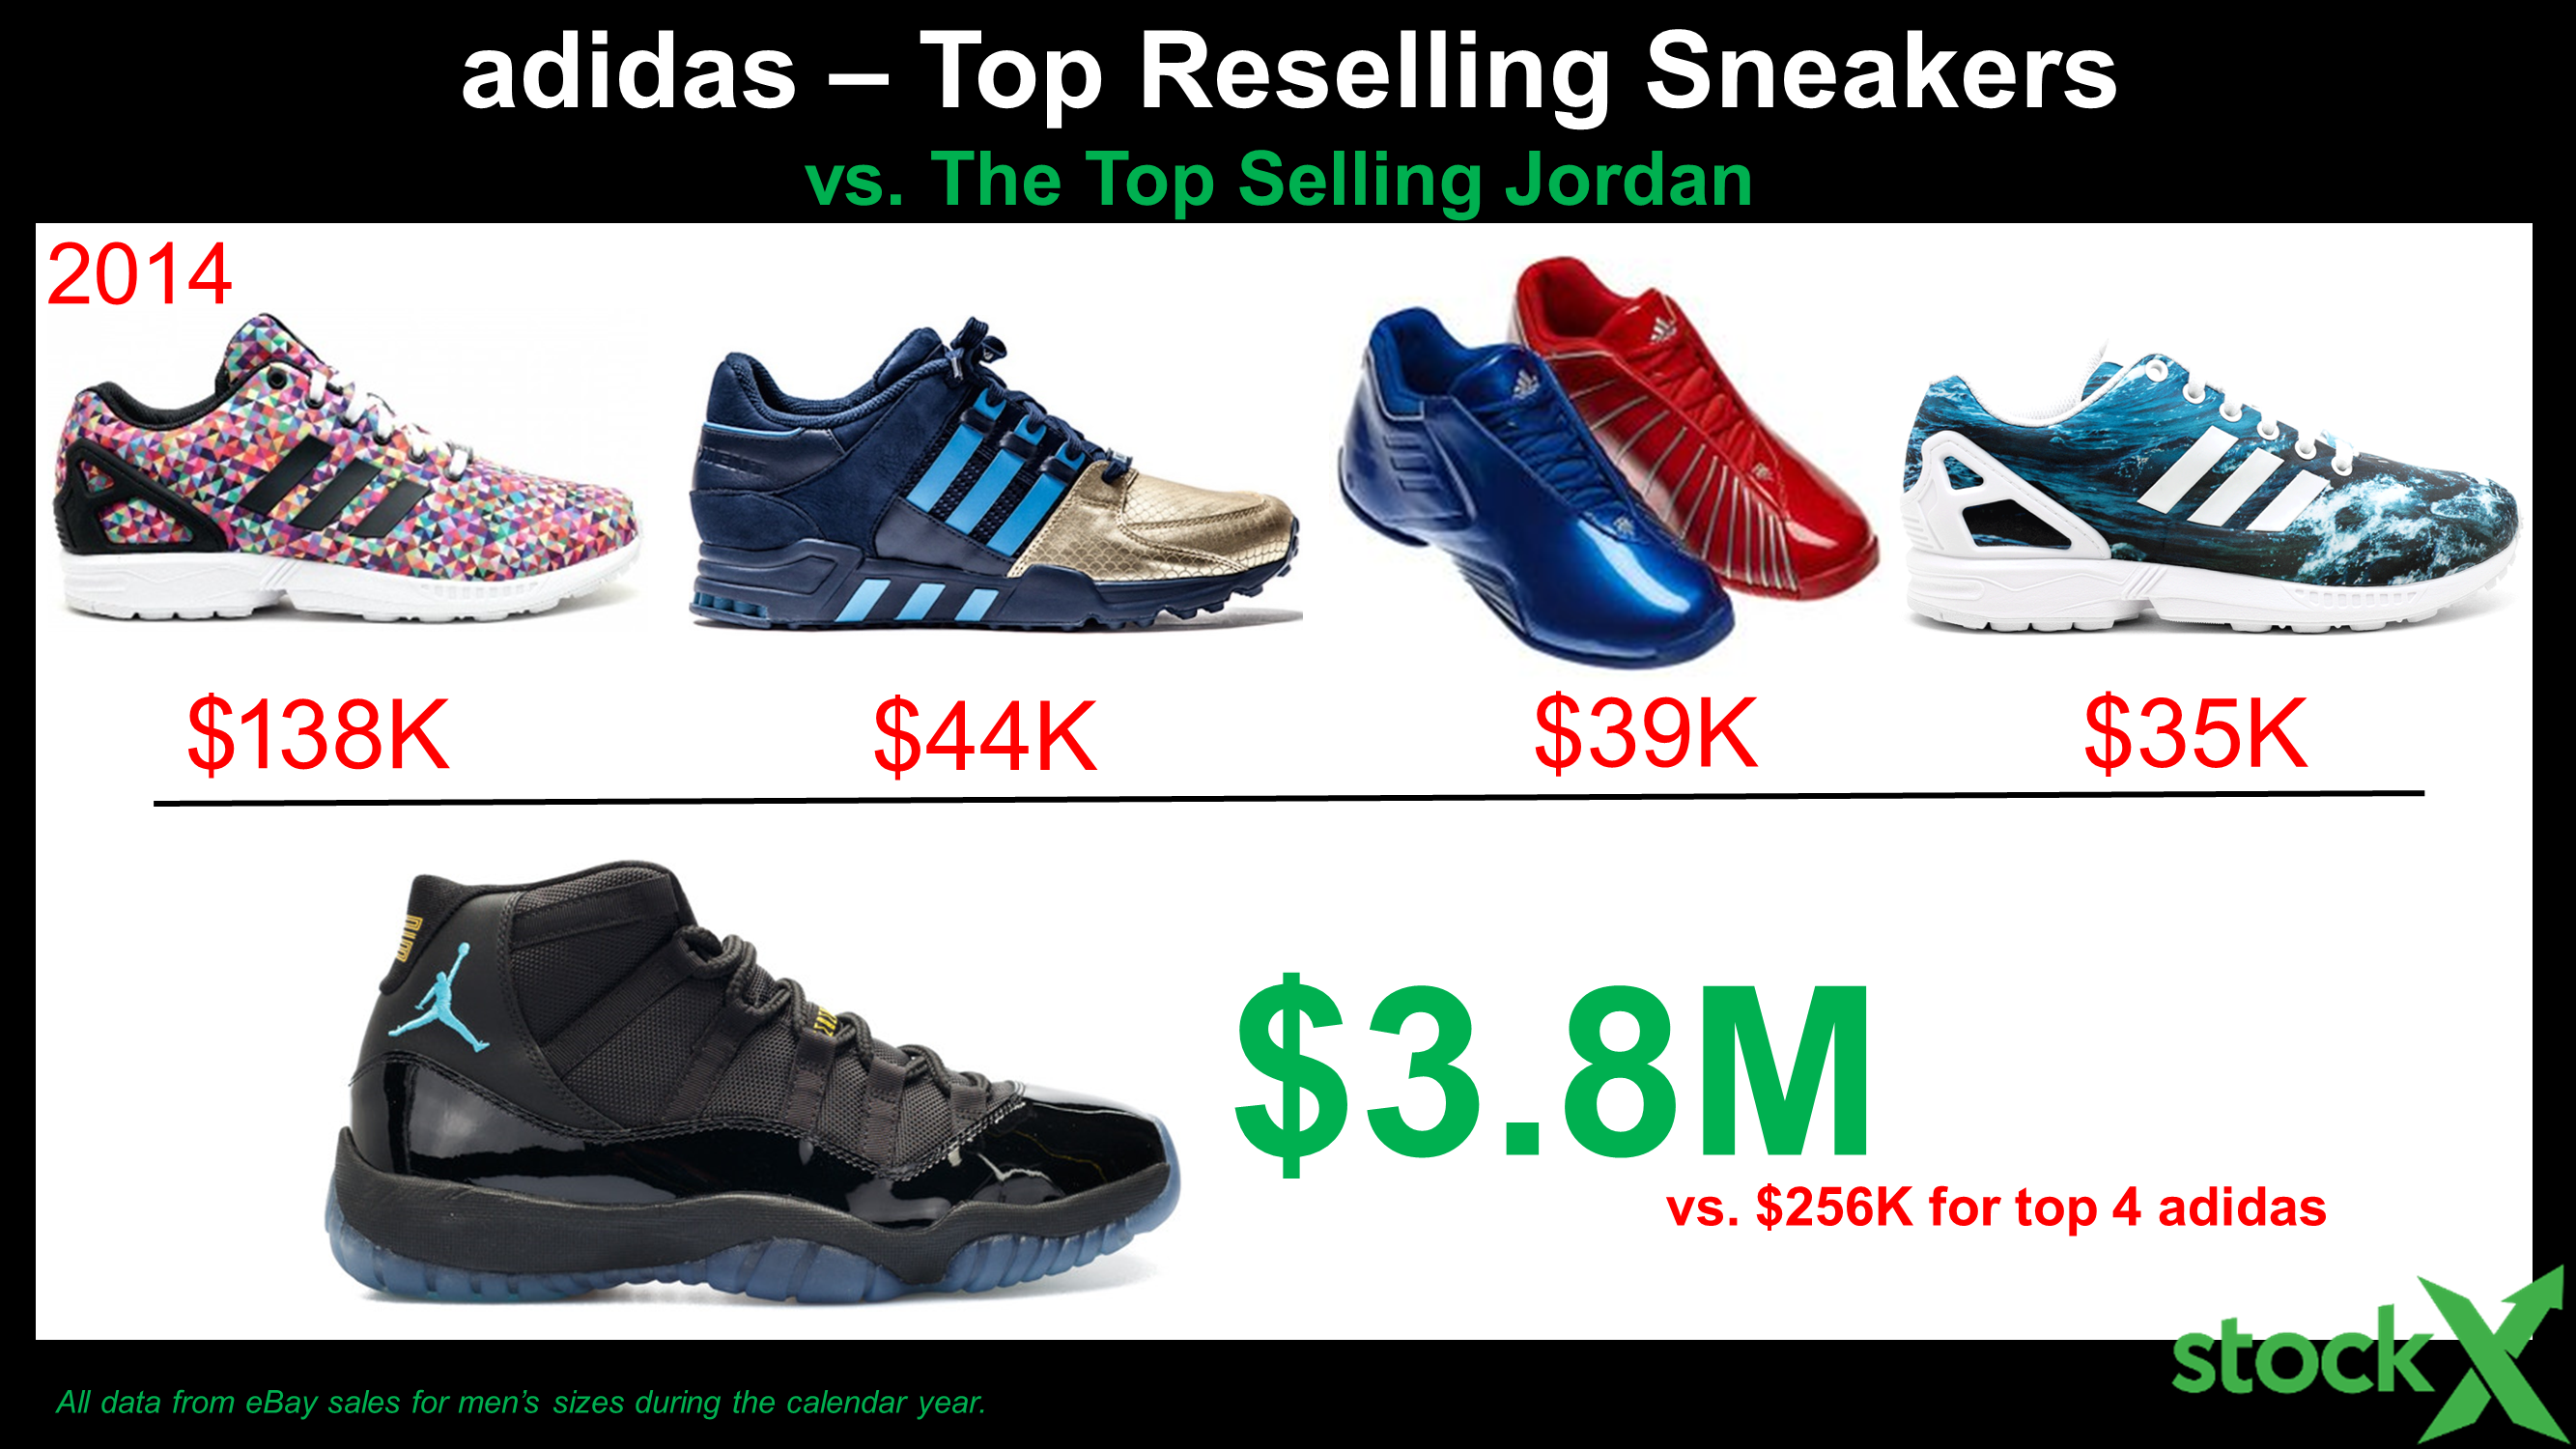 c4d1437e The History* of adidas Resell - StockX News